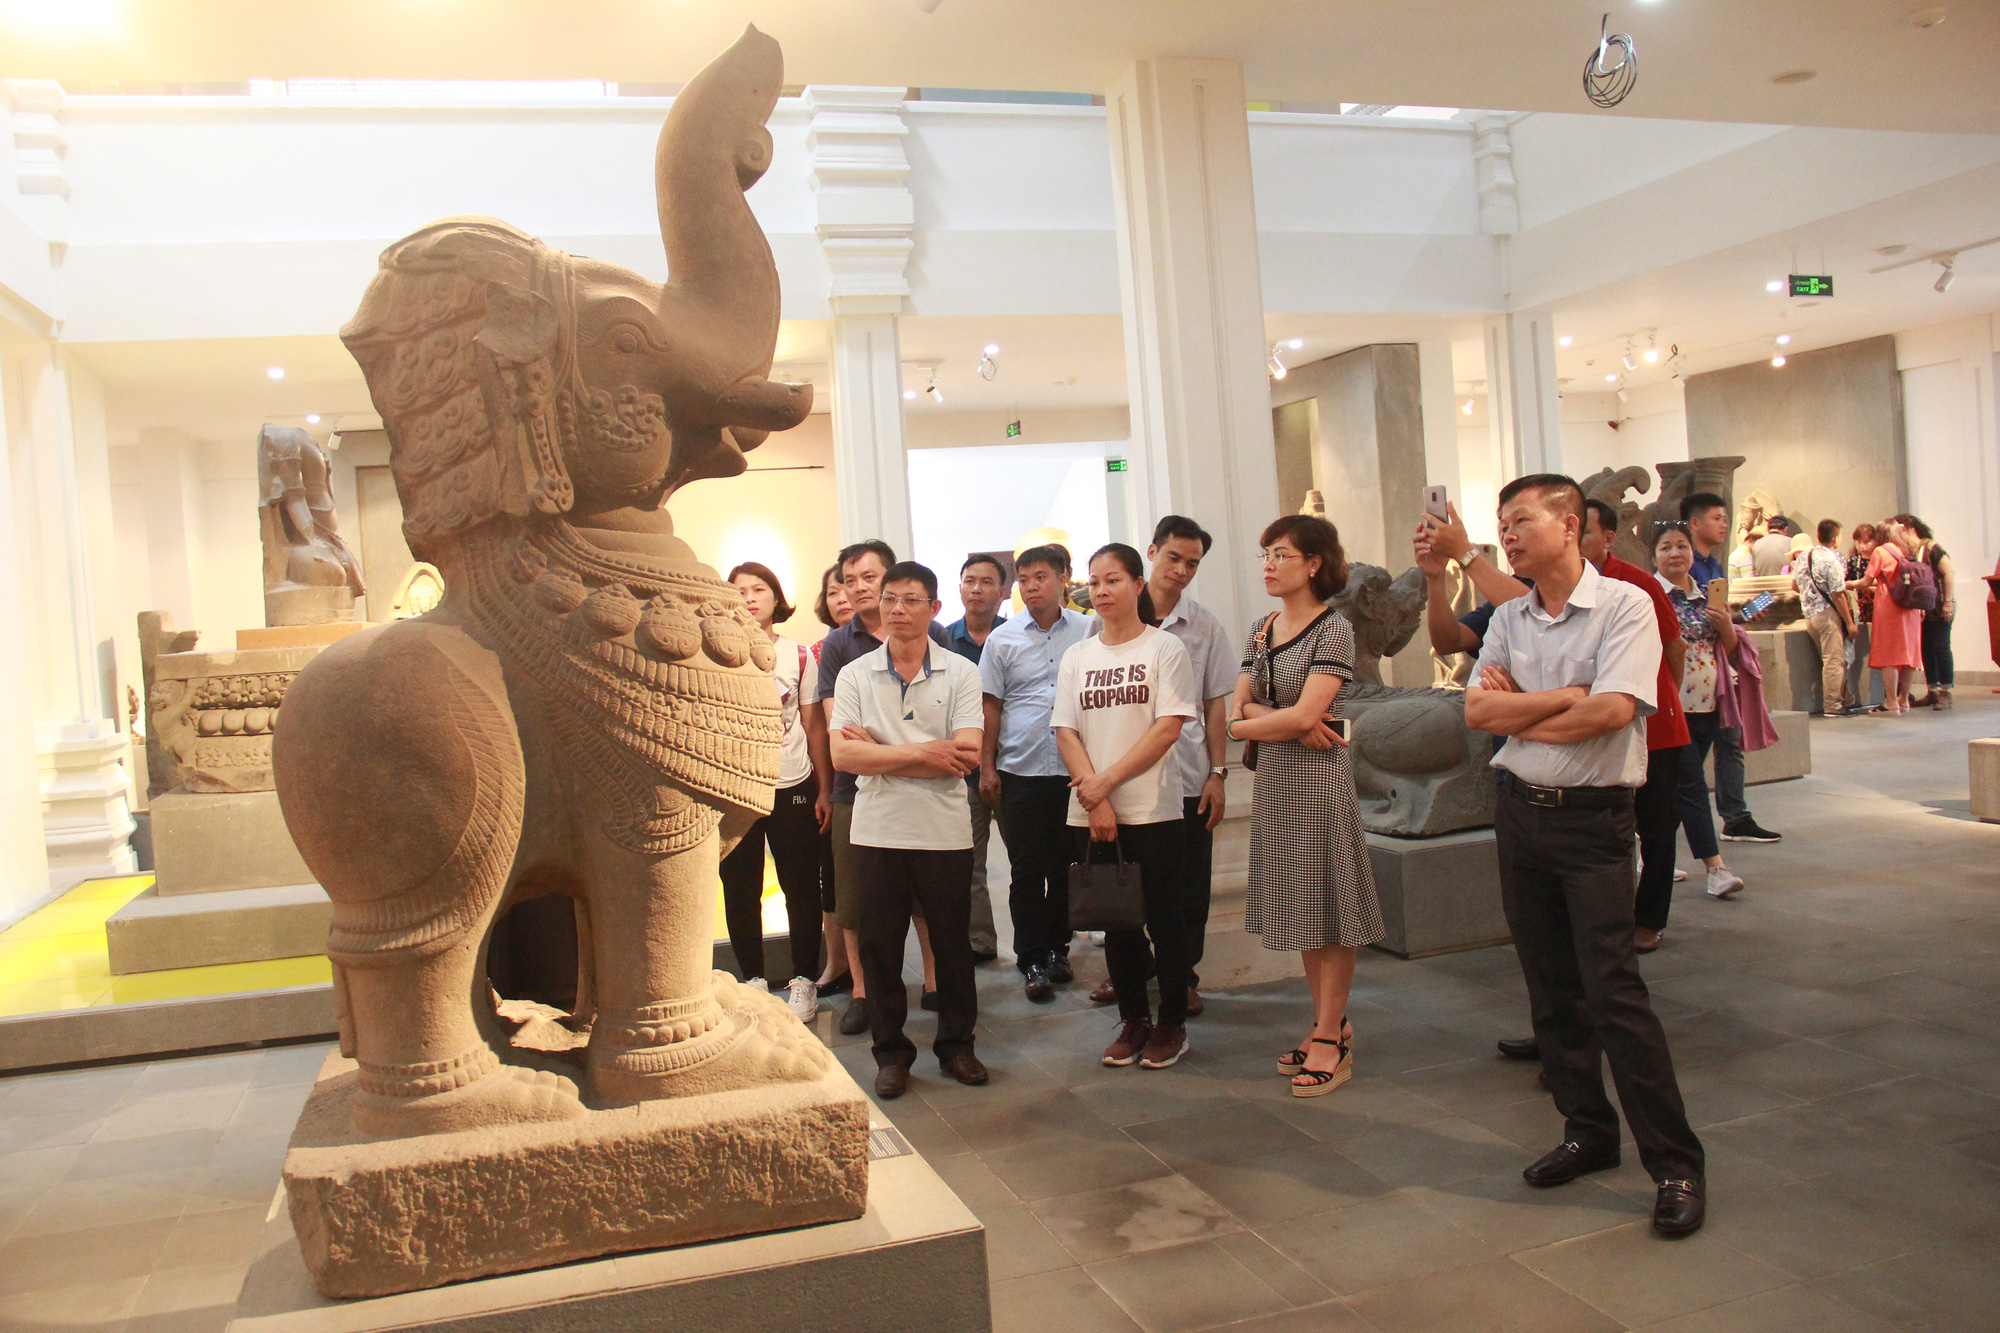 <em>Visitors look at an ancient sculpture at the Museum of Cham Sculpture in Da Nang, Vietnam. Photo:</em> Truong Trung / Tuoi Tre